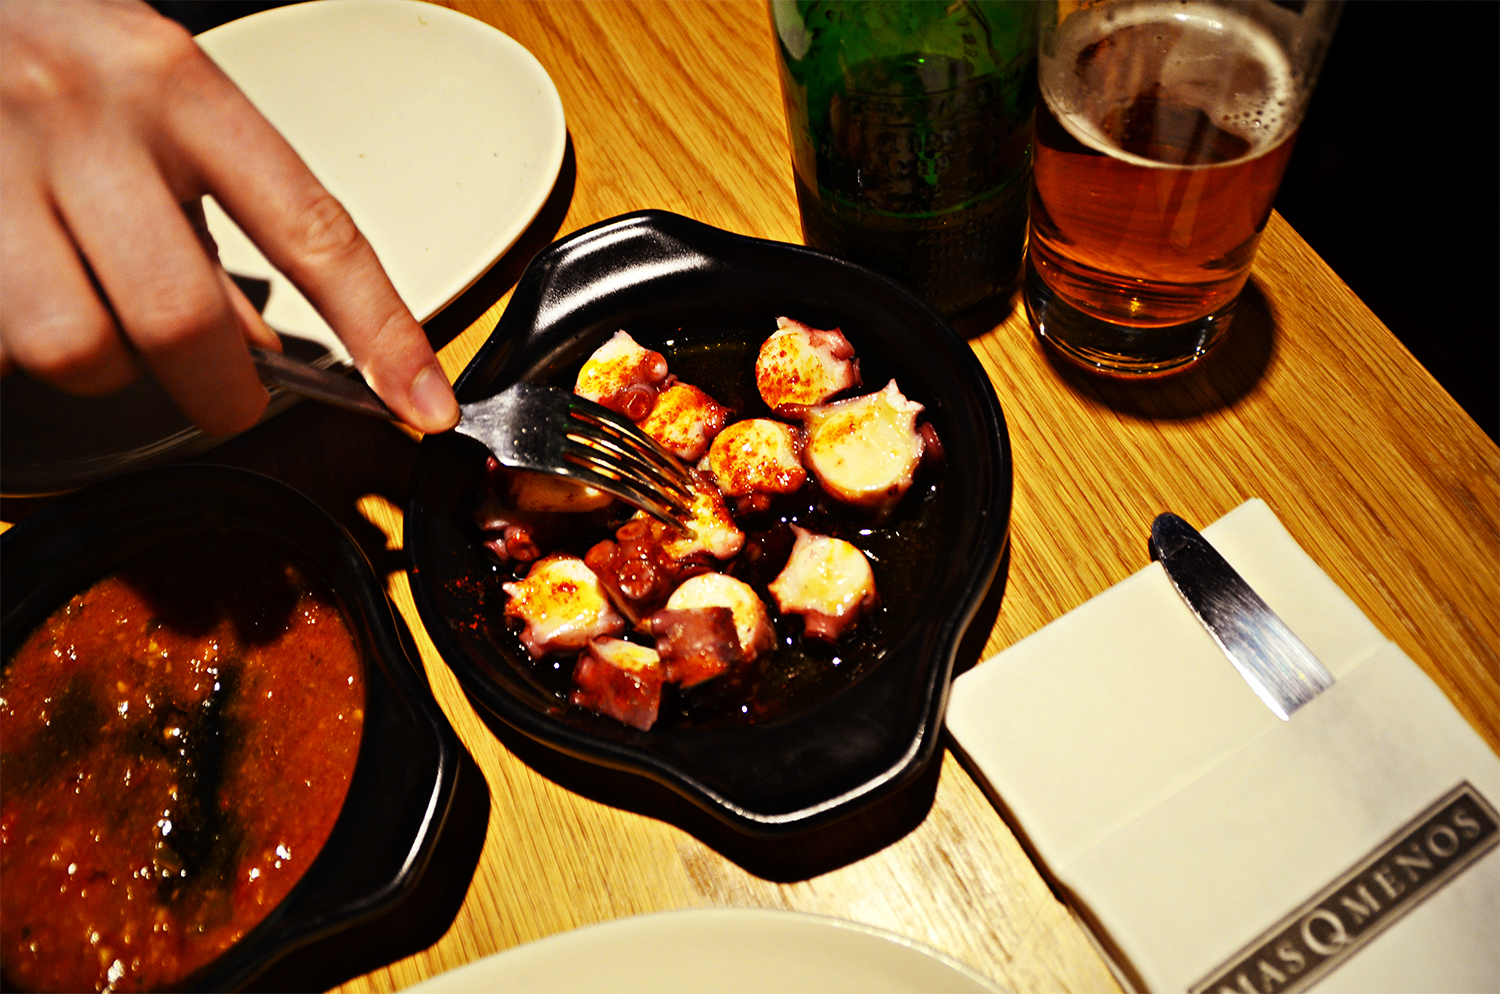 Galican Style Octopus, Spanish Cuisine Review in London